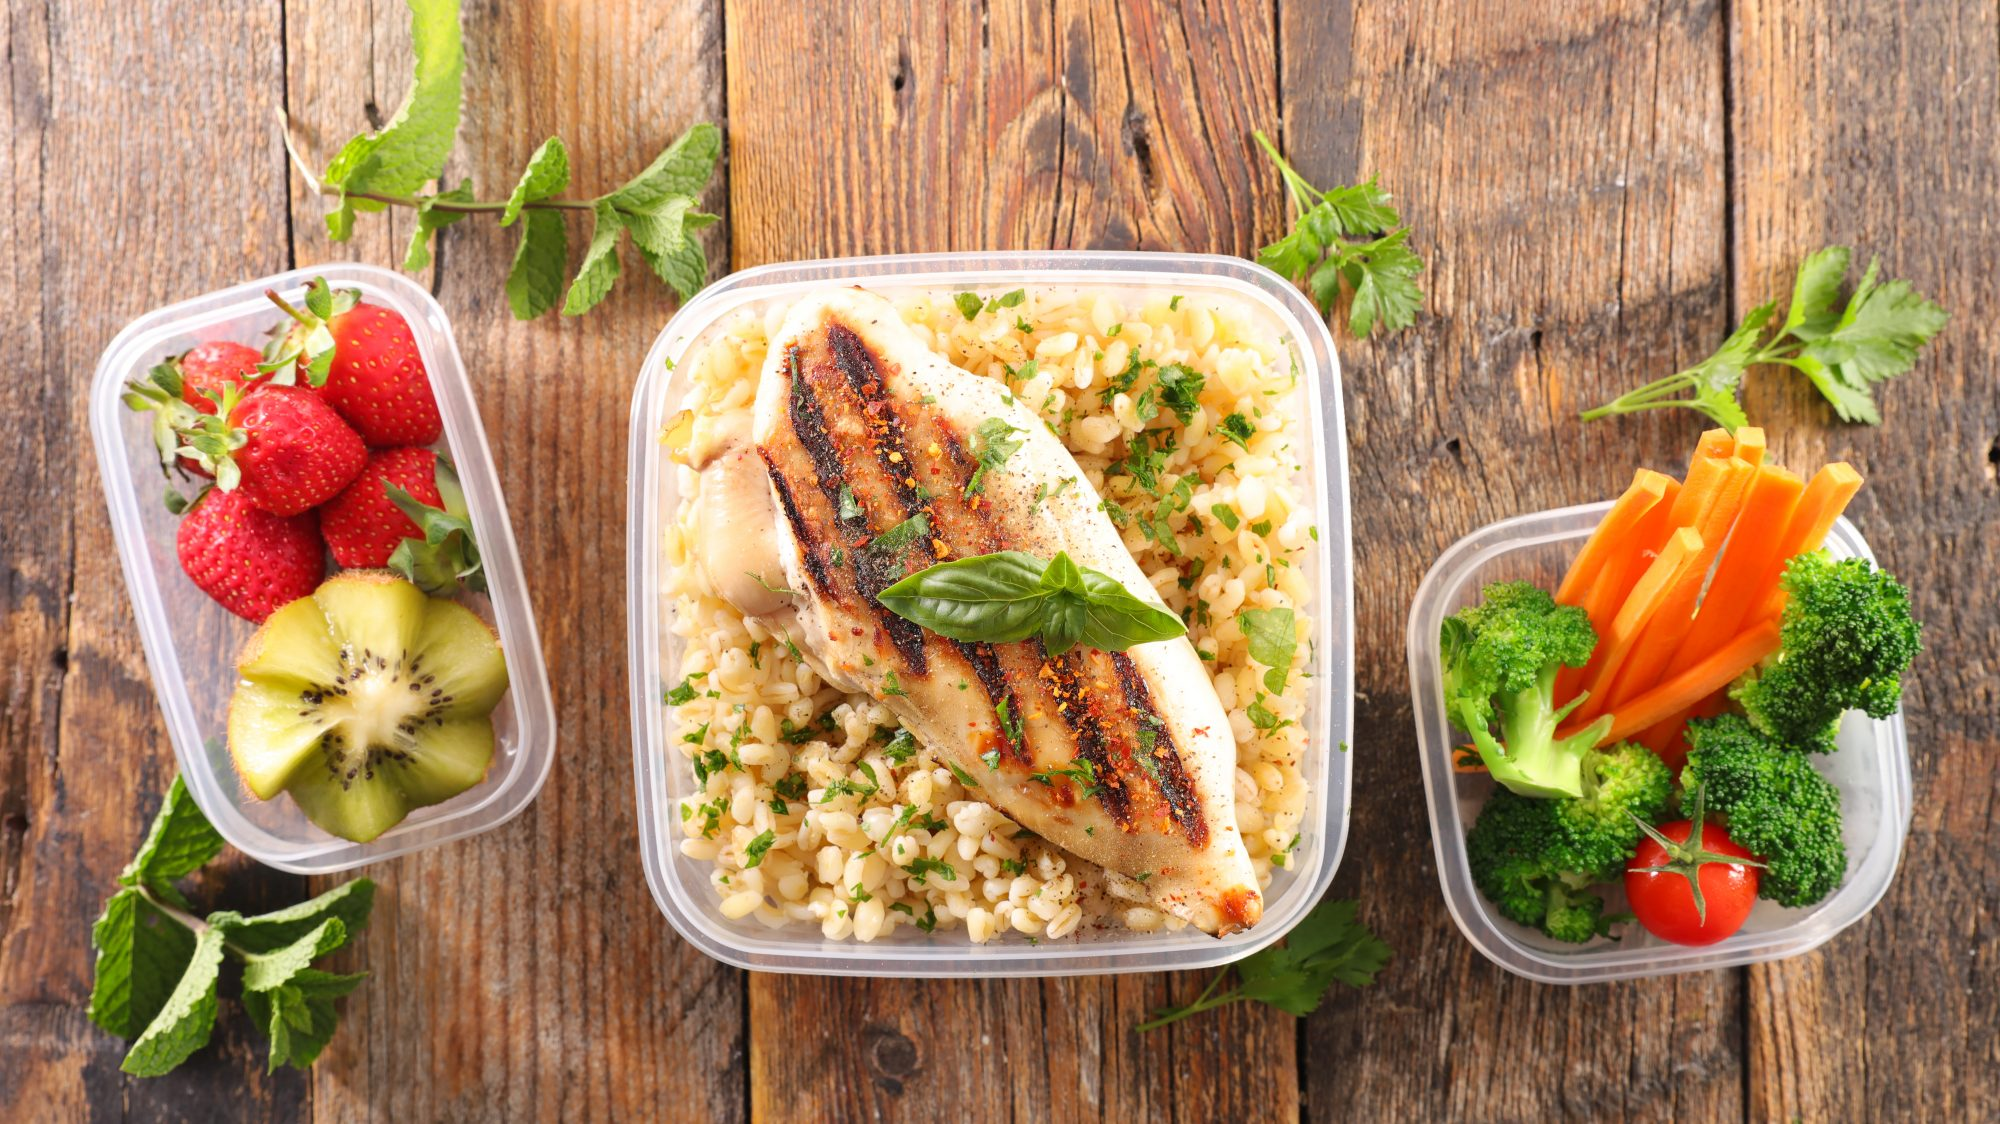 meal-prep-plastic-container